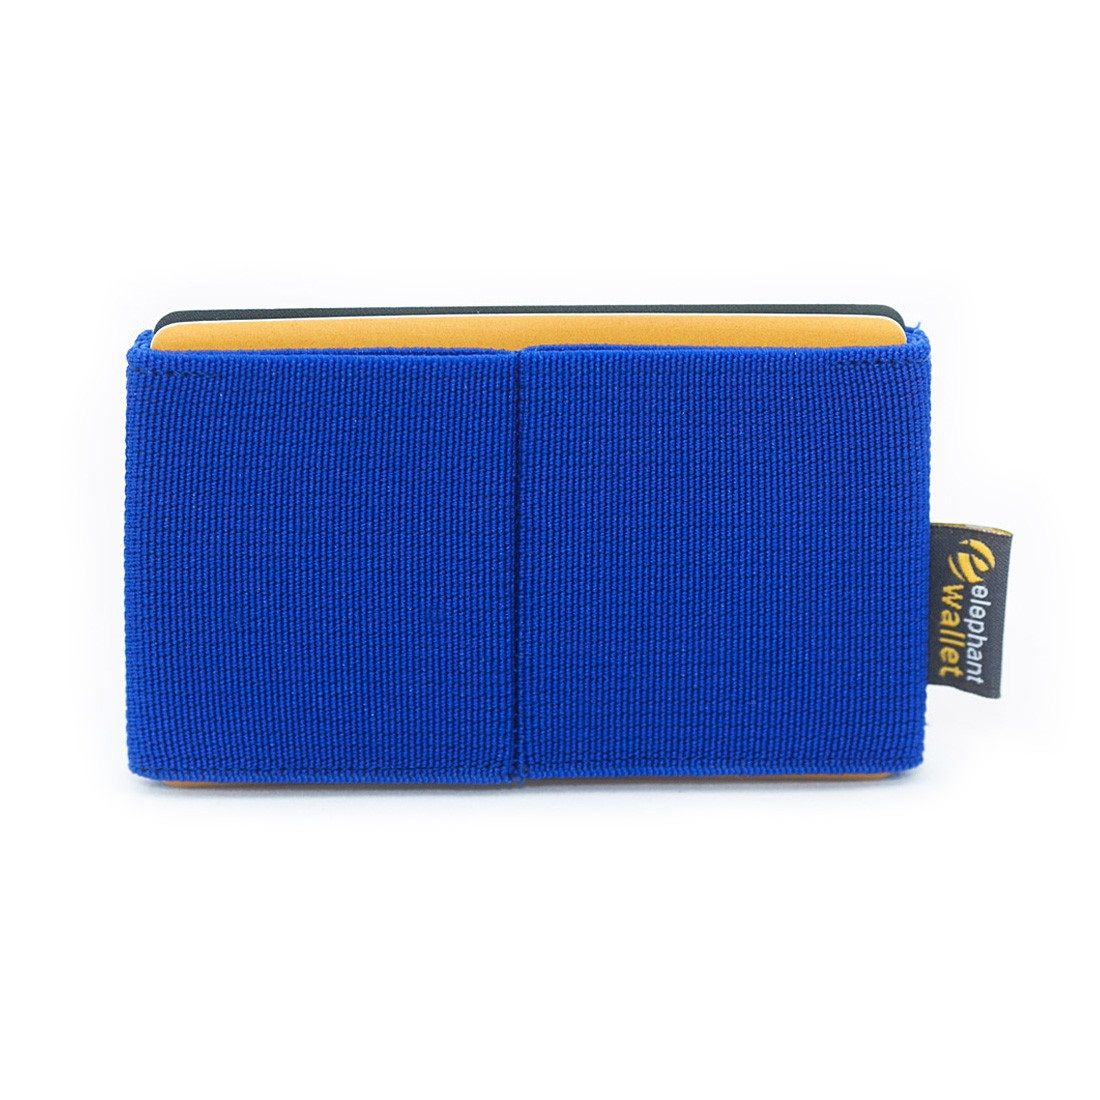 elephant Minimalist Rubber Wallet - Blue